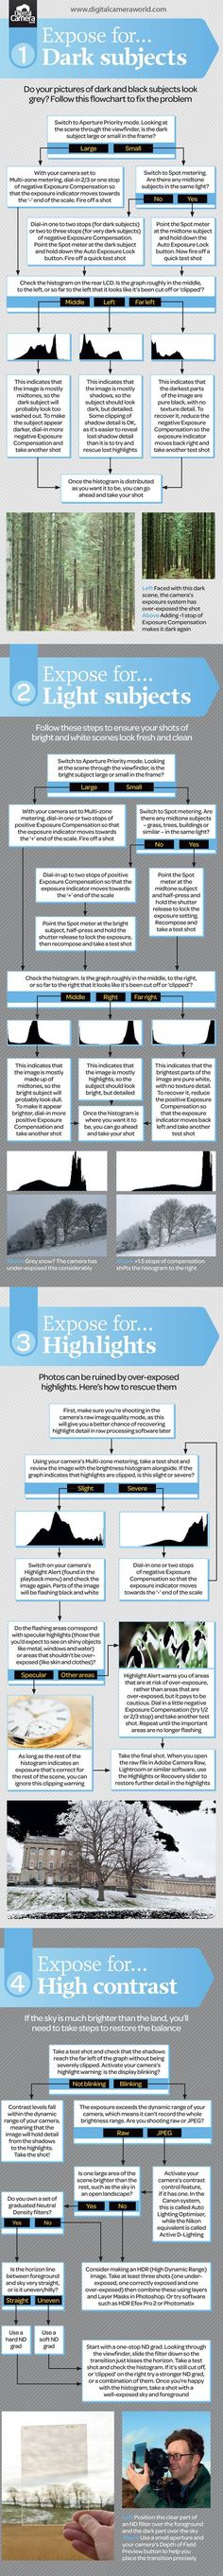 Photography Basics: the No. 1 cheat sheet for metering and exposure #photographybasics